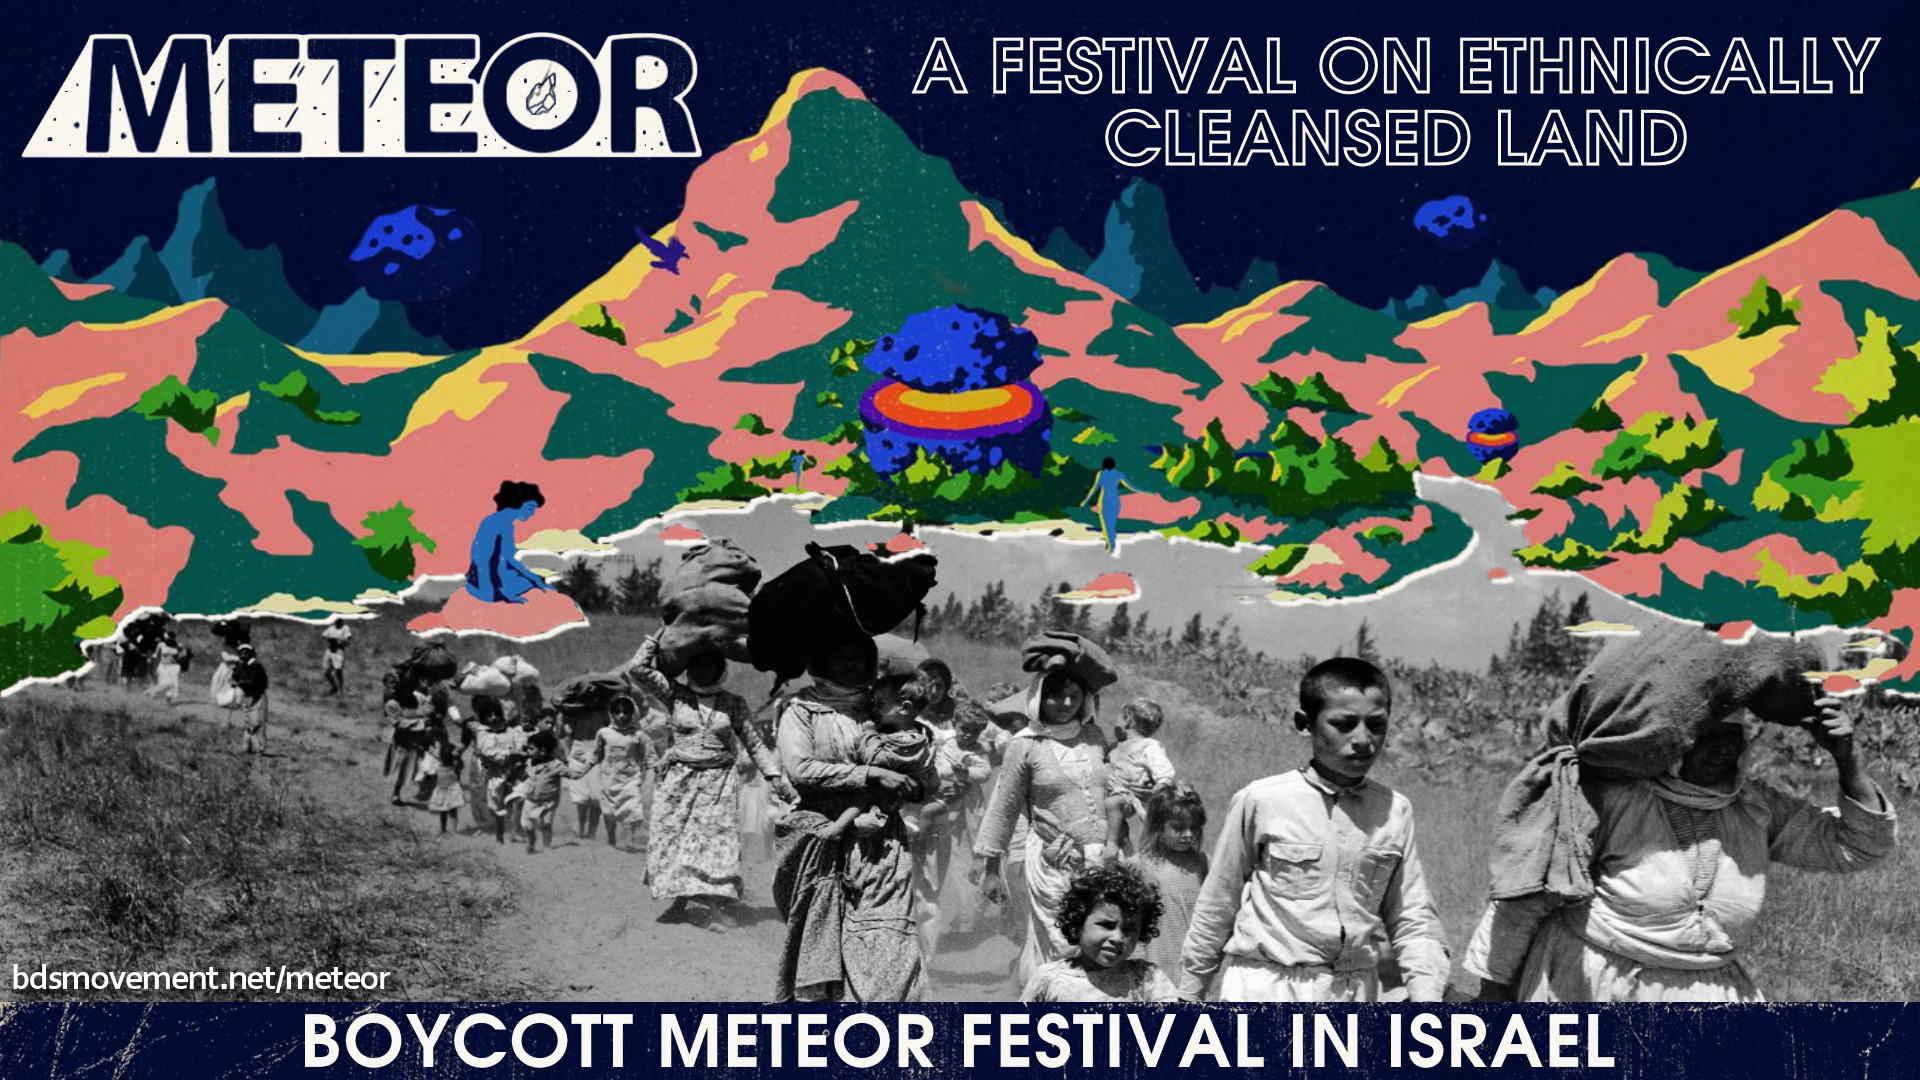 Meteor - A festival on ethnically cleansed land.